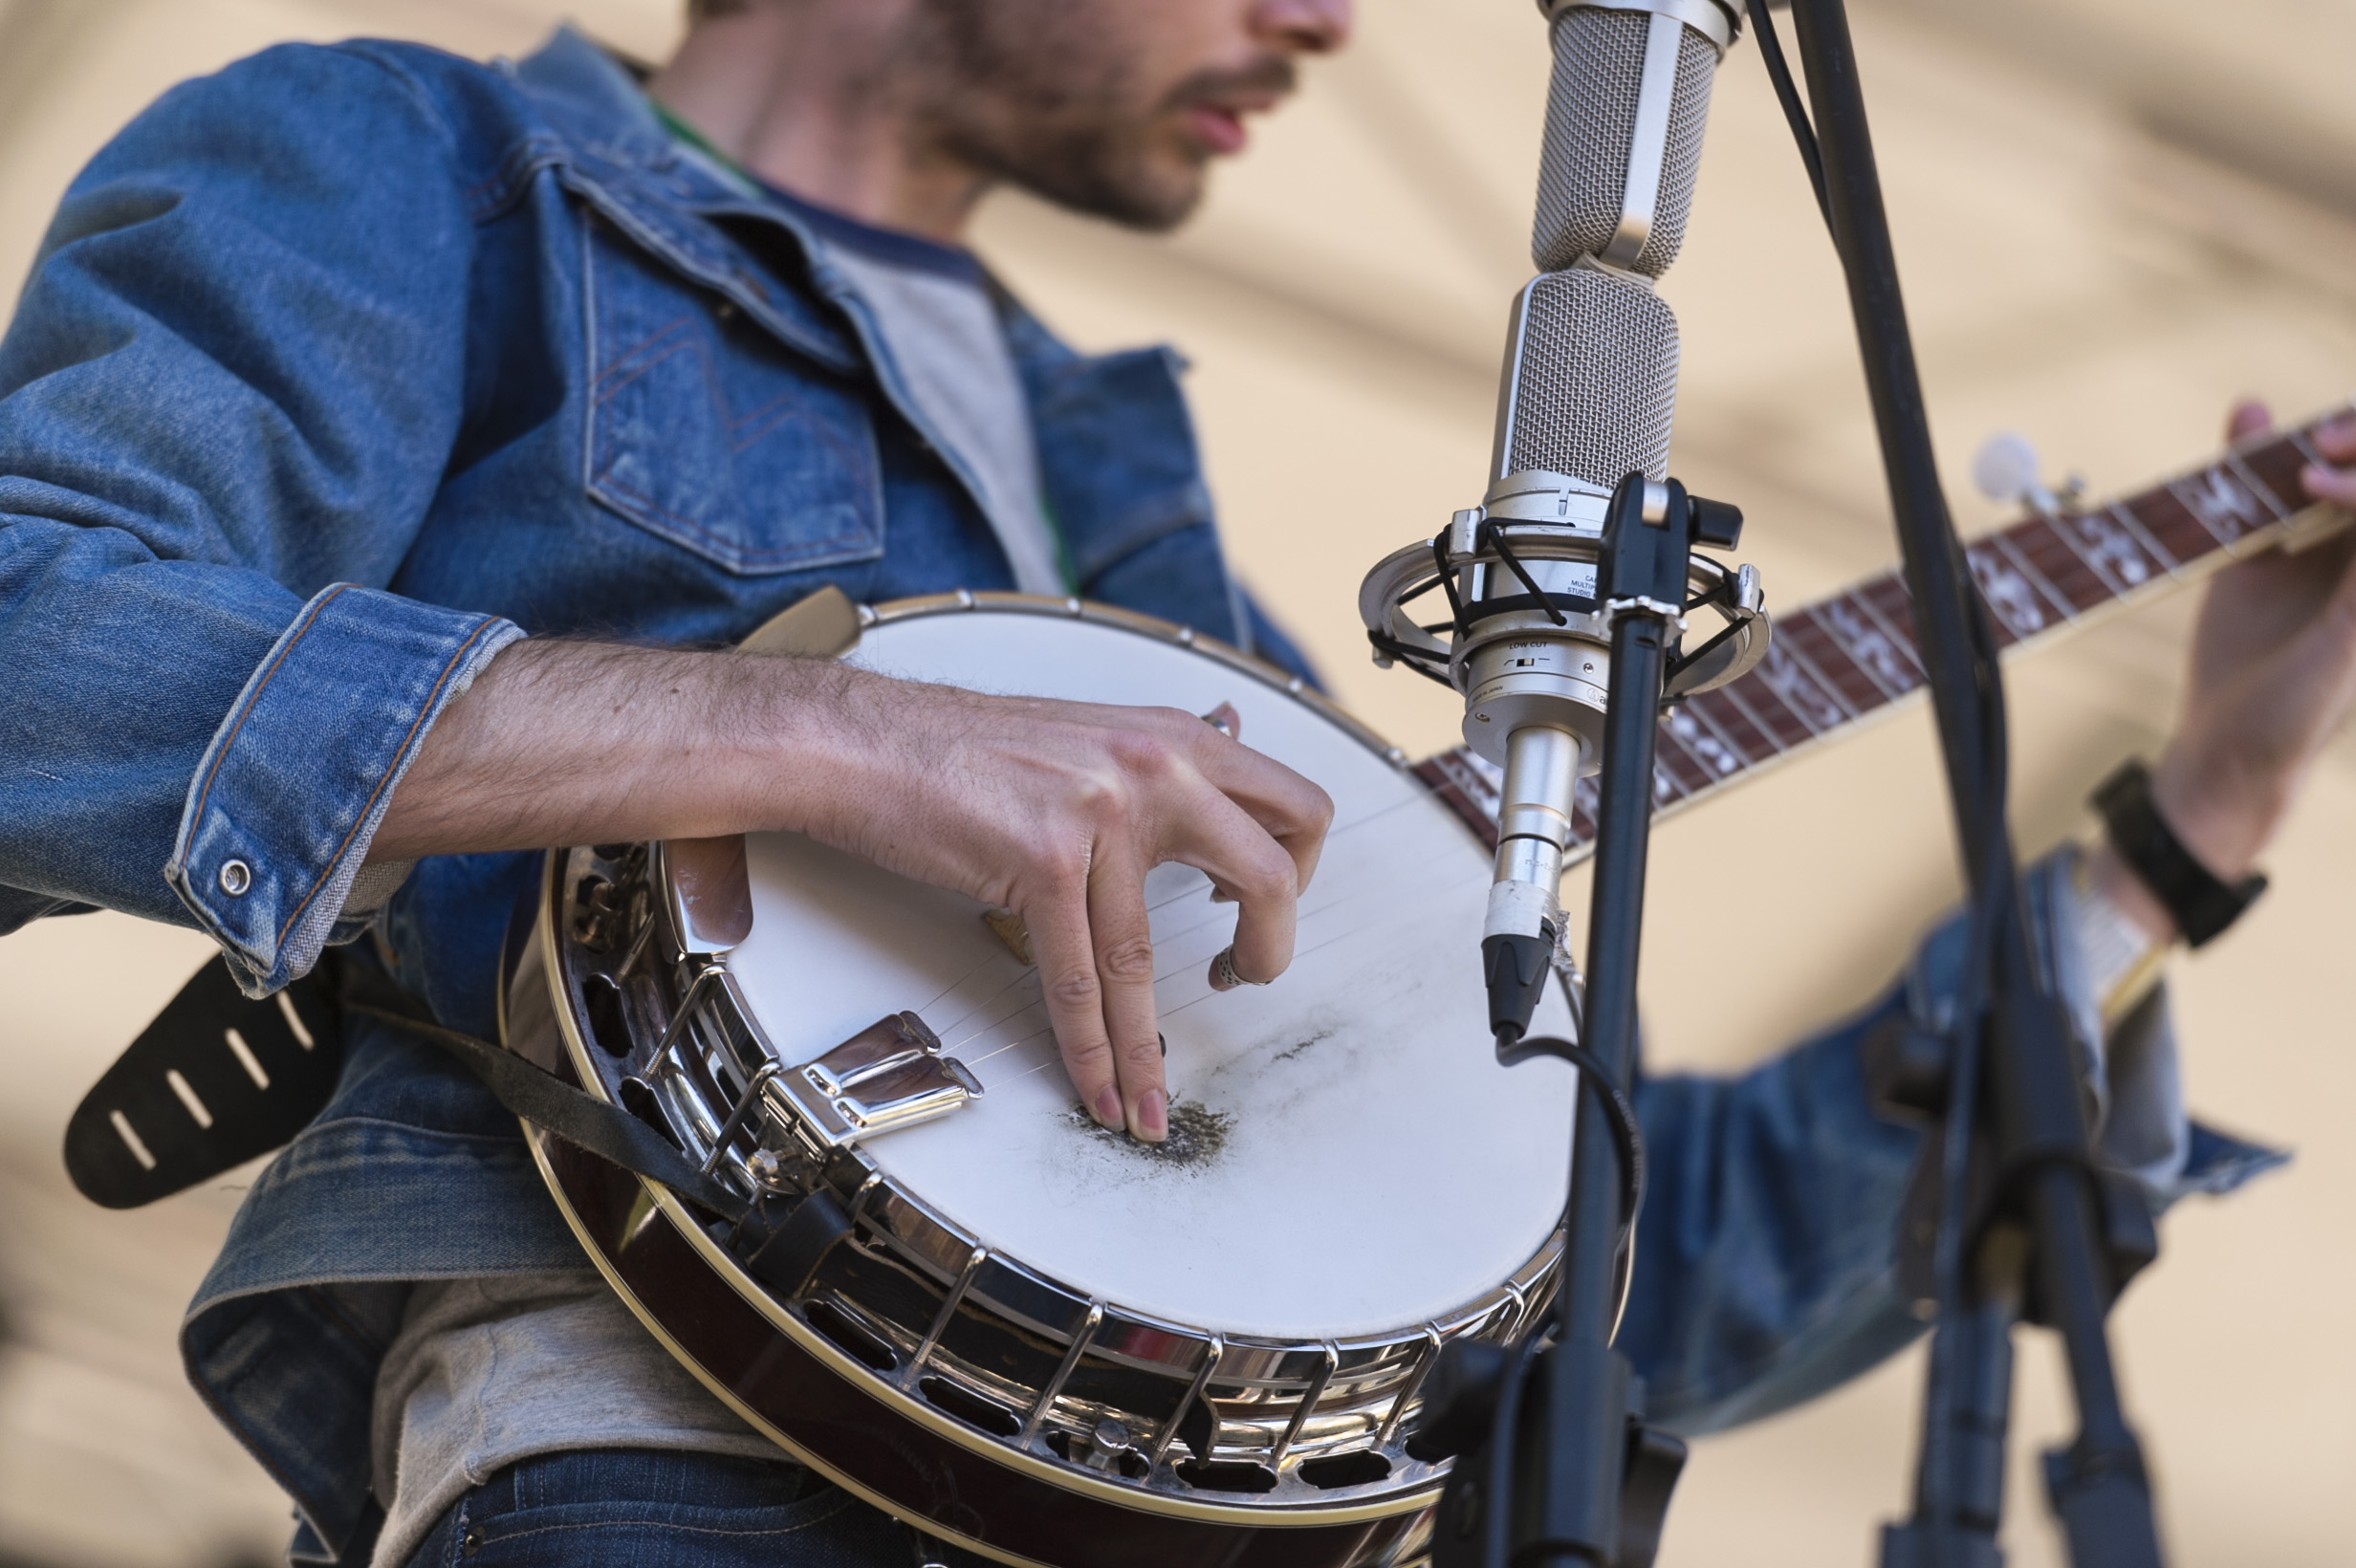 Banjo_image by Lyn McCarthy at Niche Pictures 2014